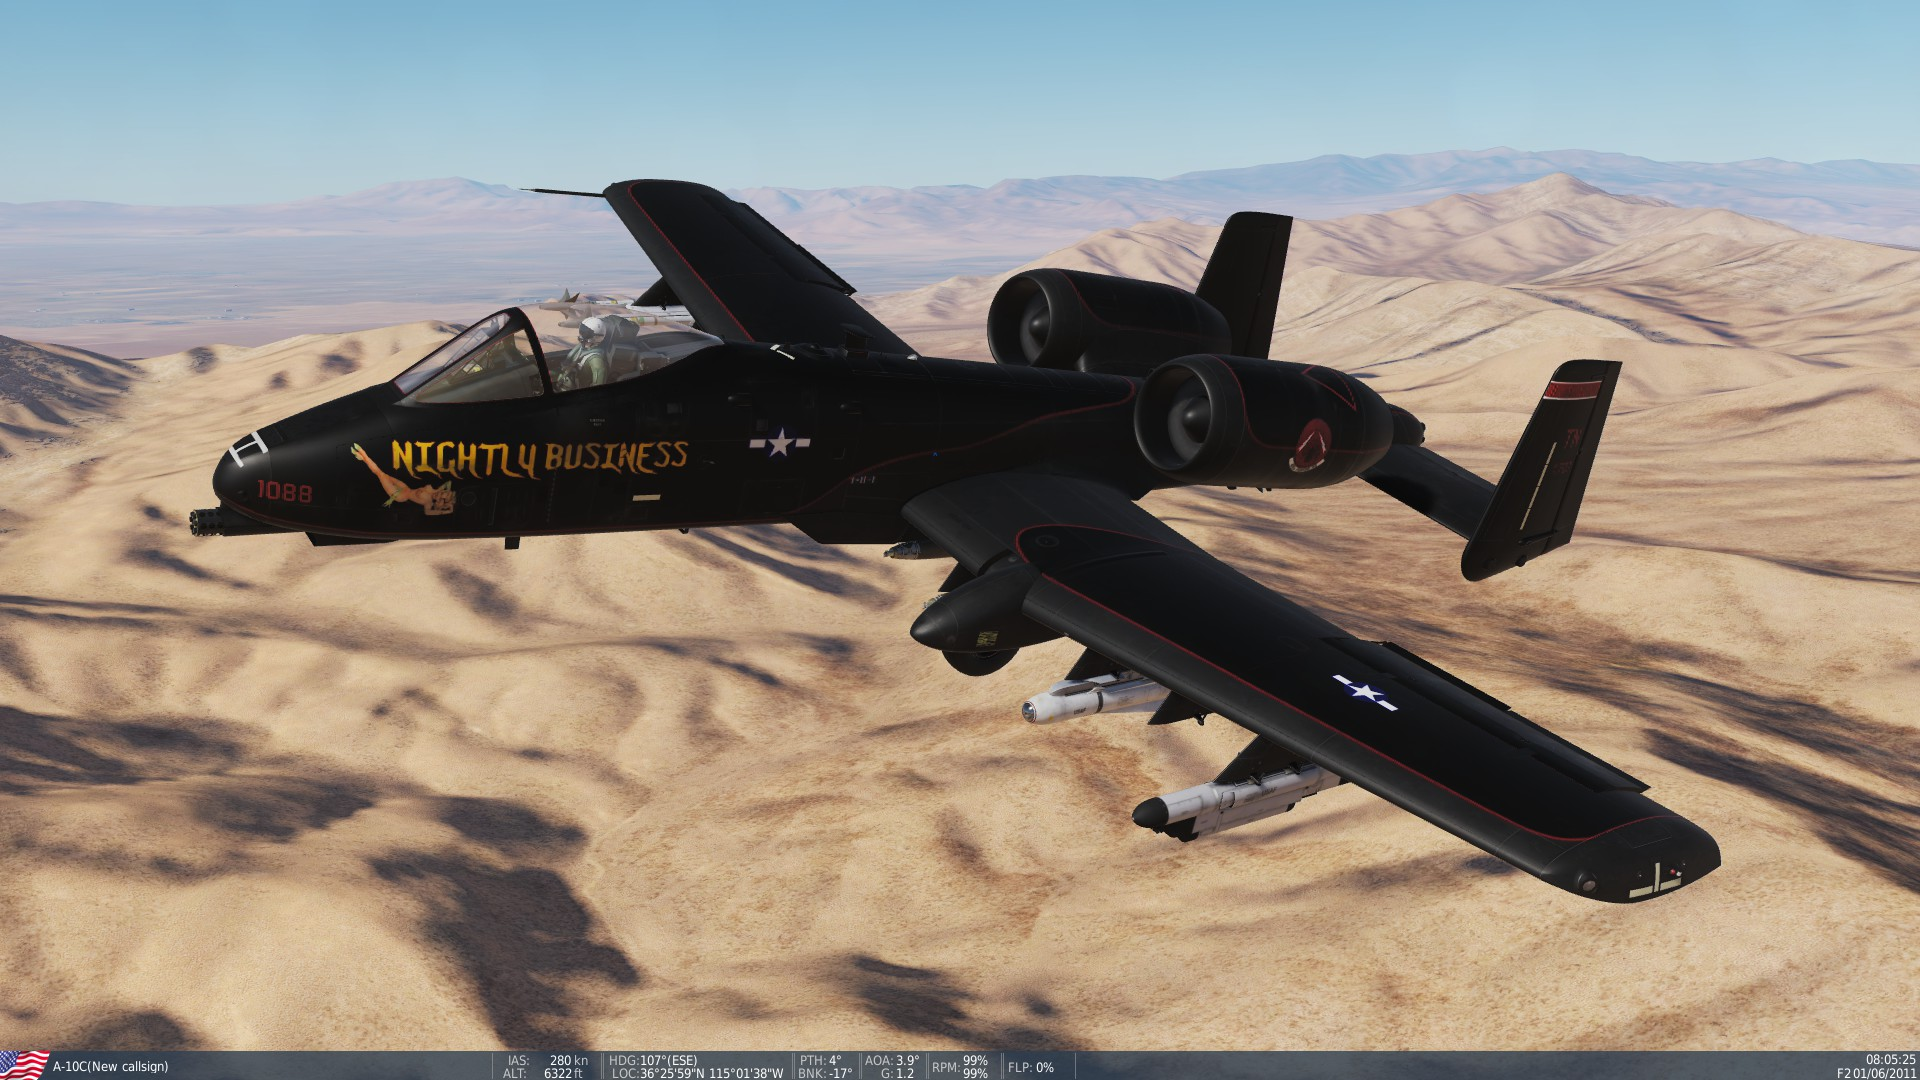 """Nightly Business"" P-61 Tribute Skin for the A-10"